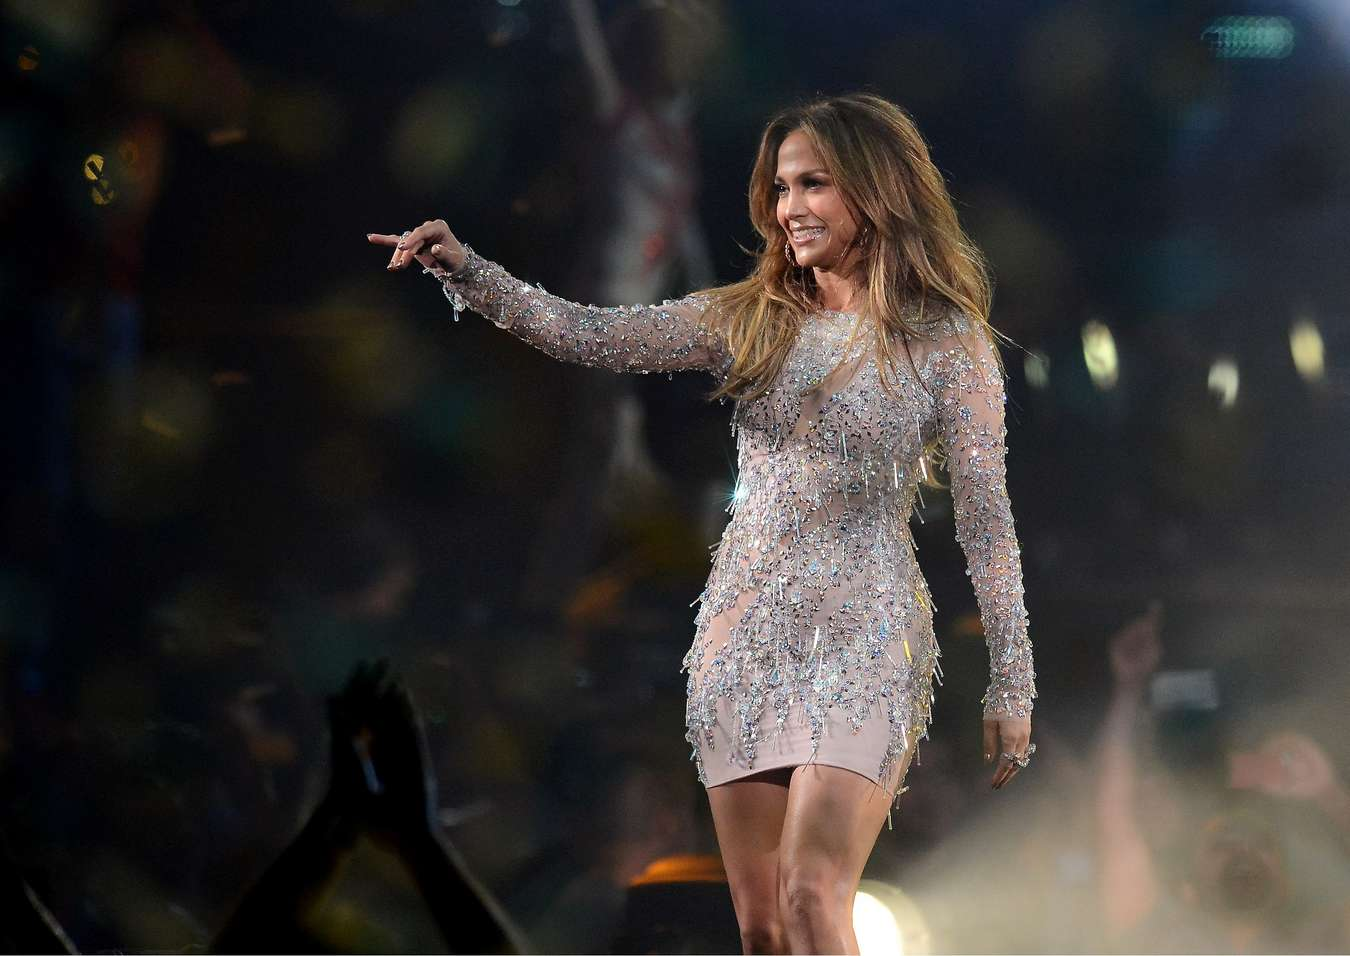 Jennifer lopez hot photos on stage 17 gotceleb Where does jennifer lopez live